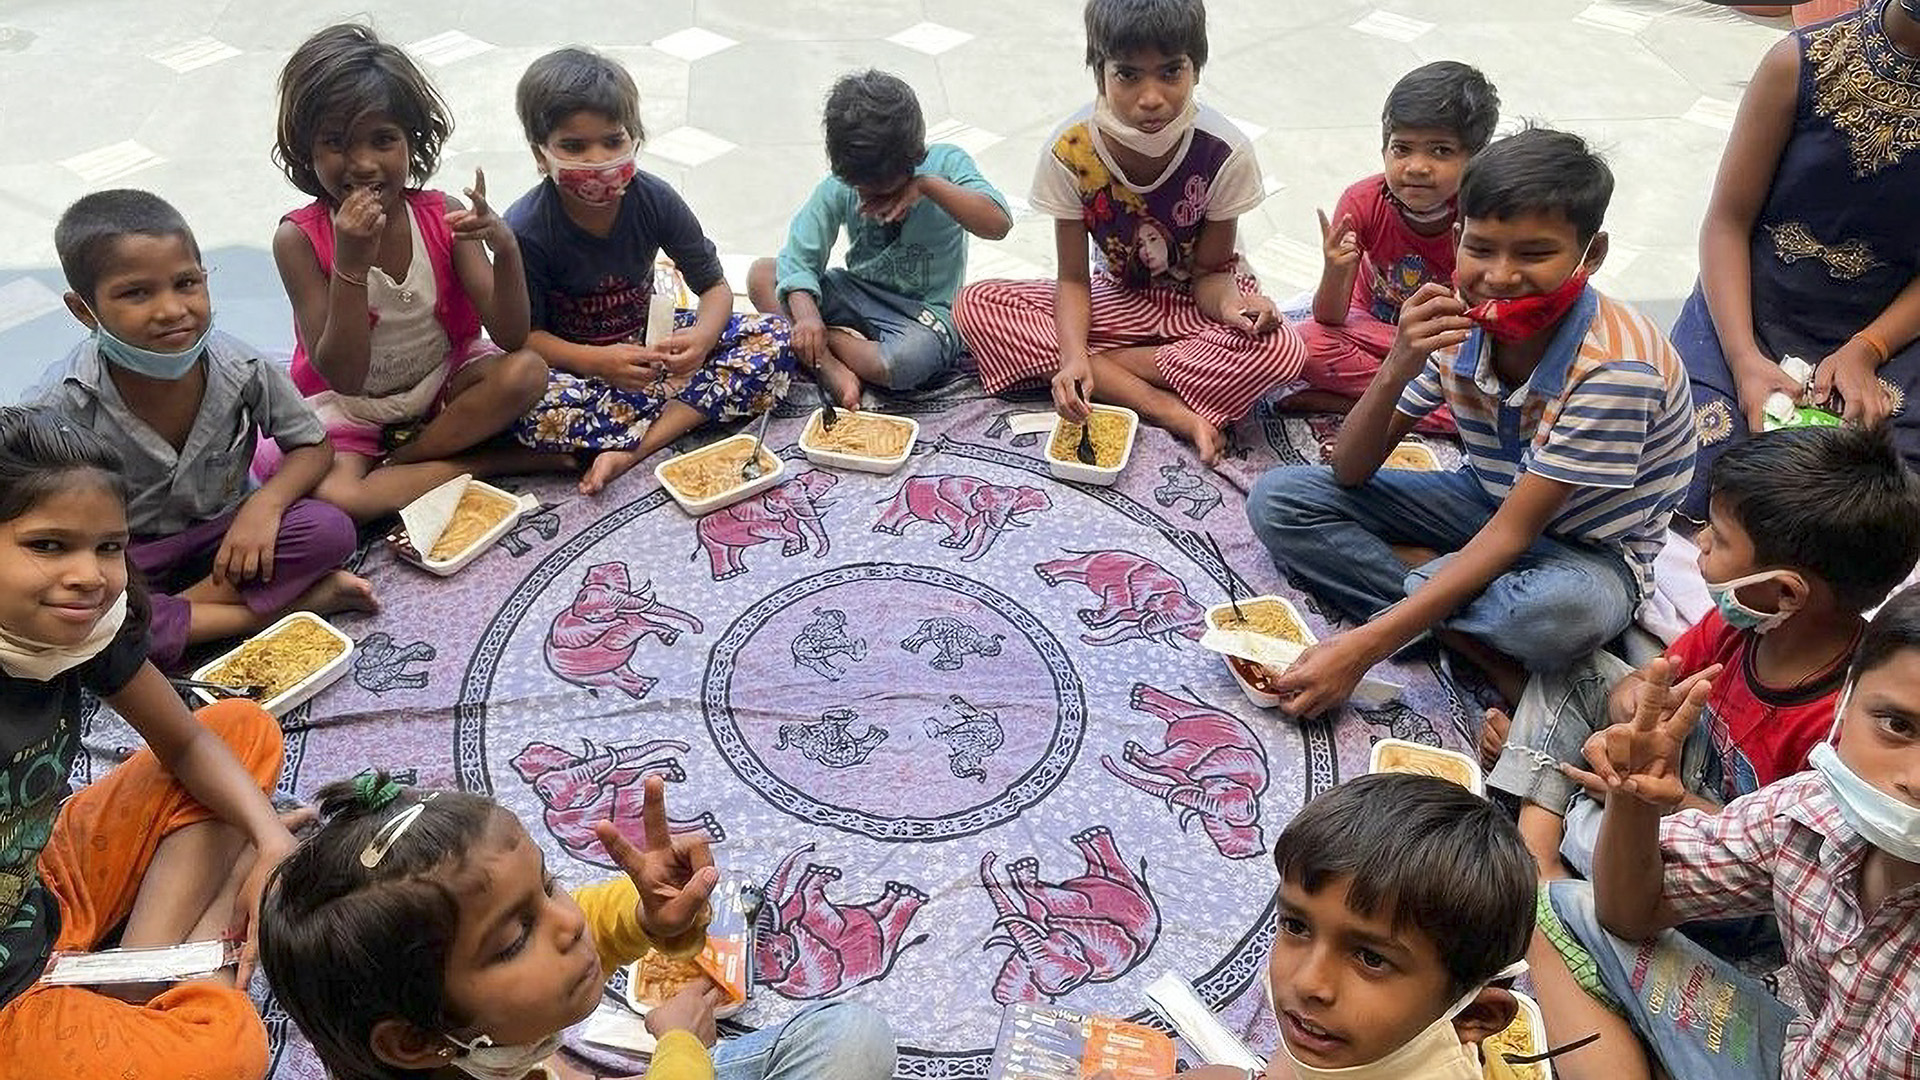 Home-Cooked Food At Doorsteps: An Initiative By India's Covid Warriors